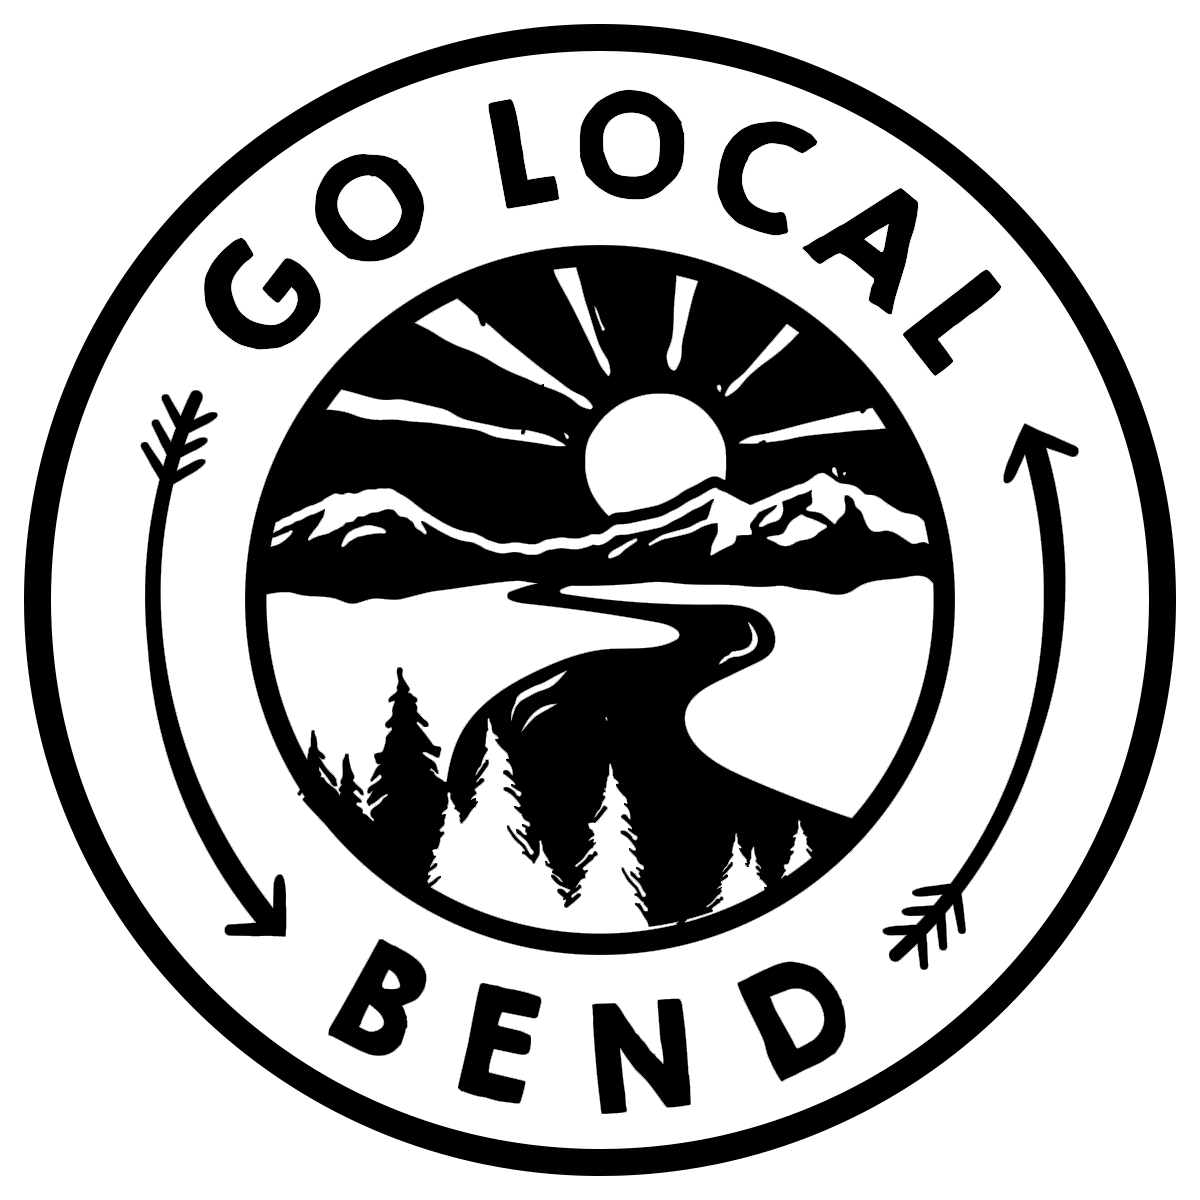 Go Local Bend